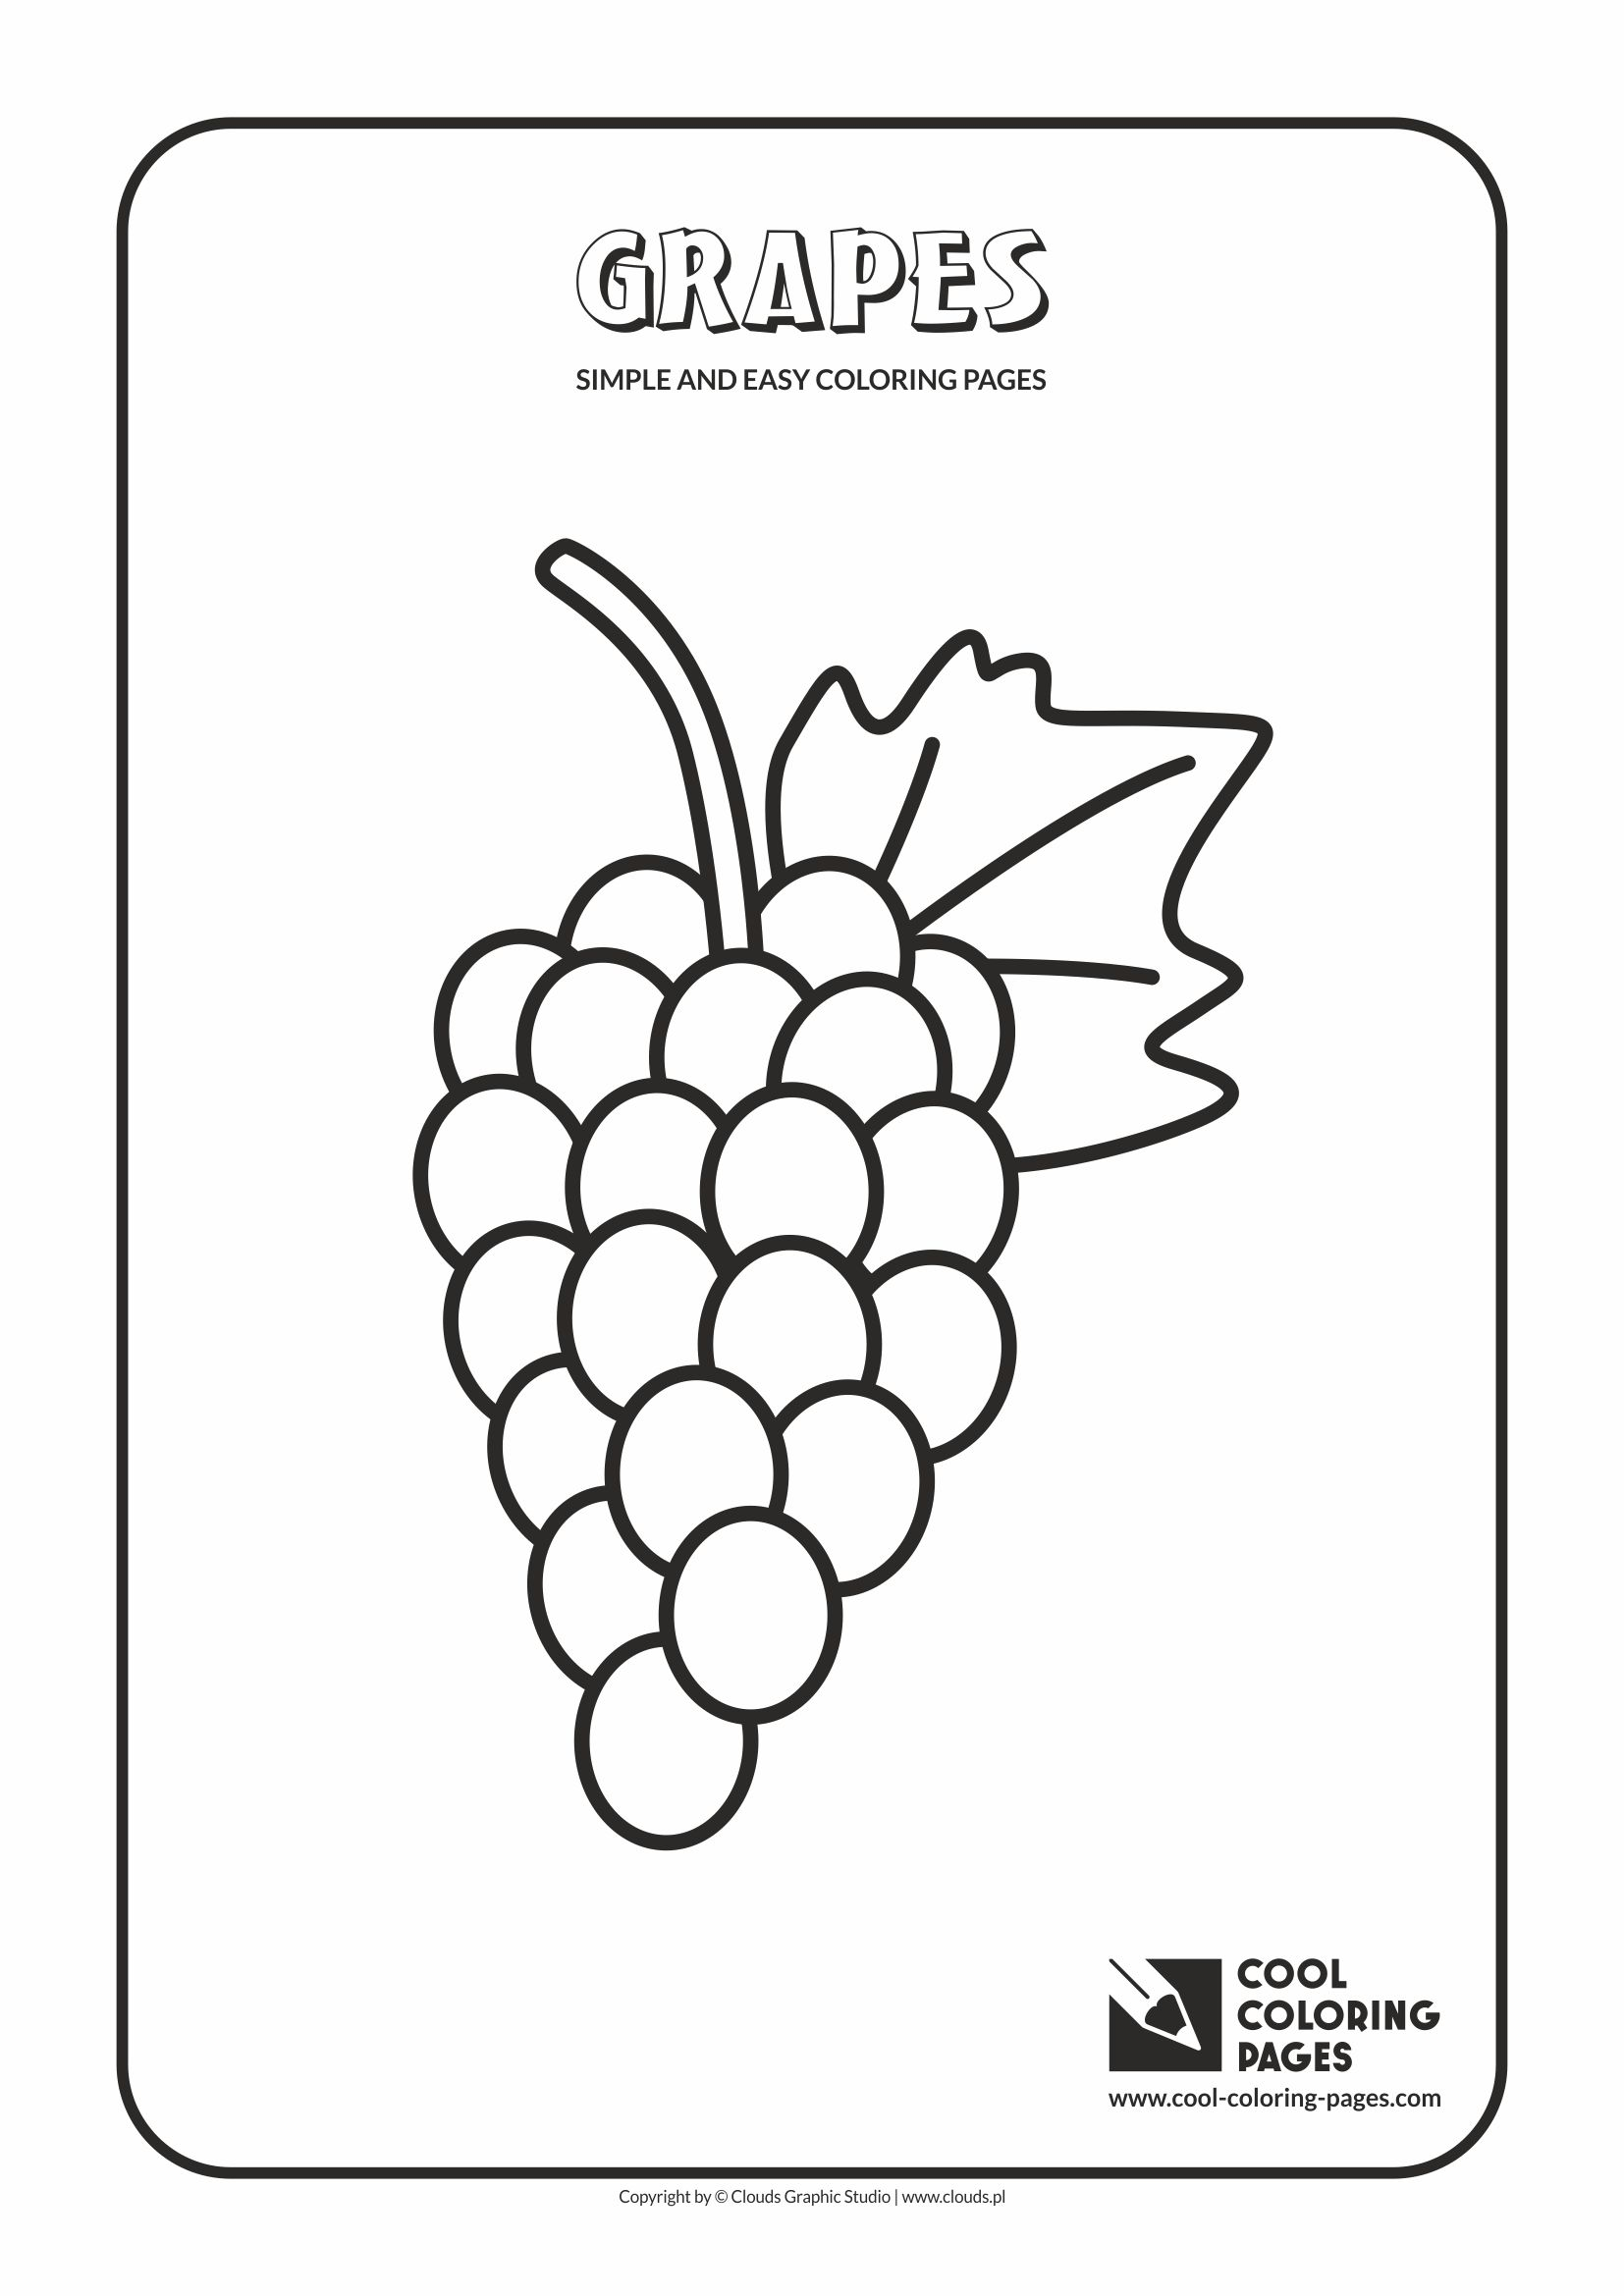 Coloring Pages Educational - Simple and easy coloring pages for toddlers grapes